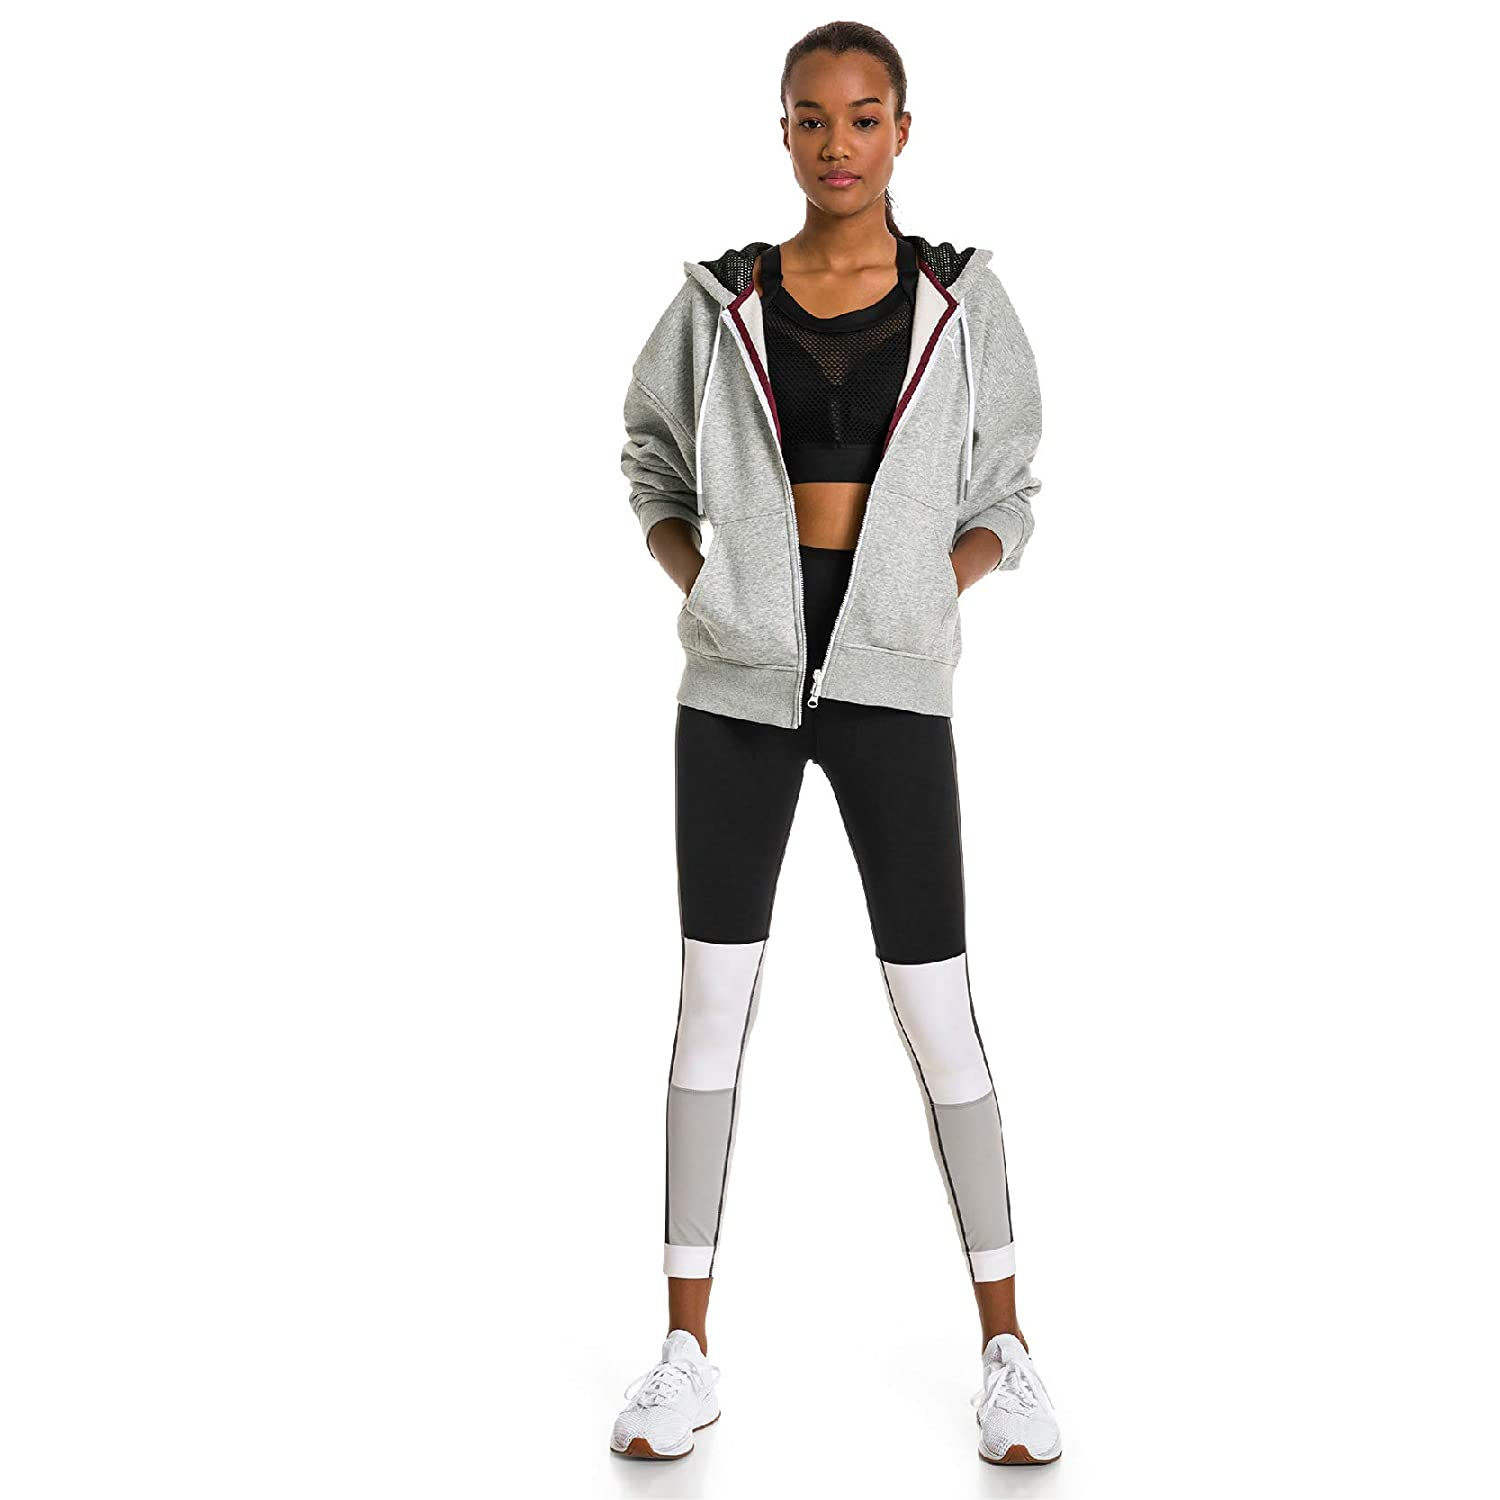 Blackwhitehigh Rise Medium PUMA Womens Sg X 7 8 Tight Leggings